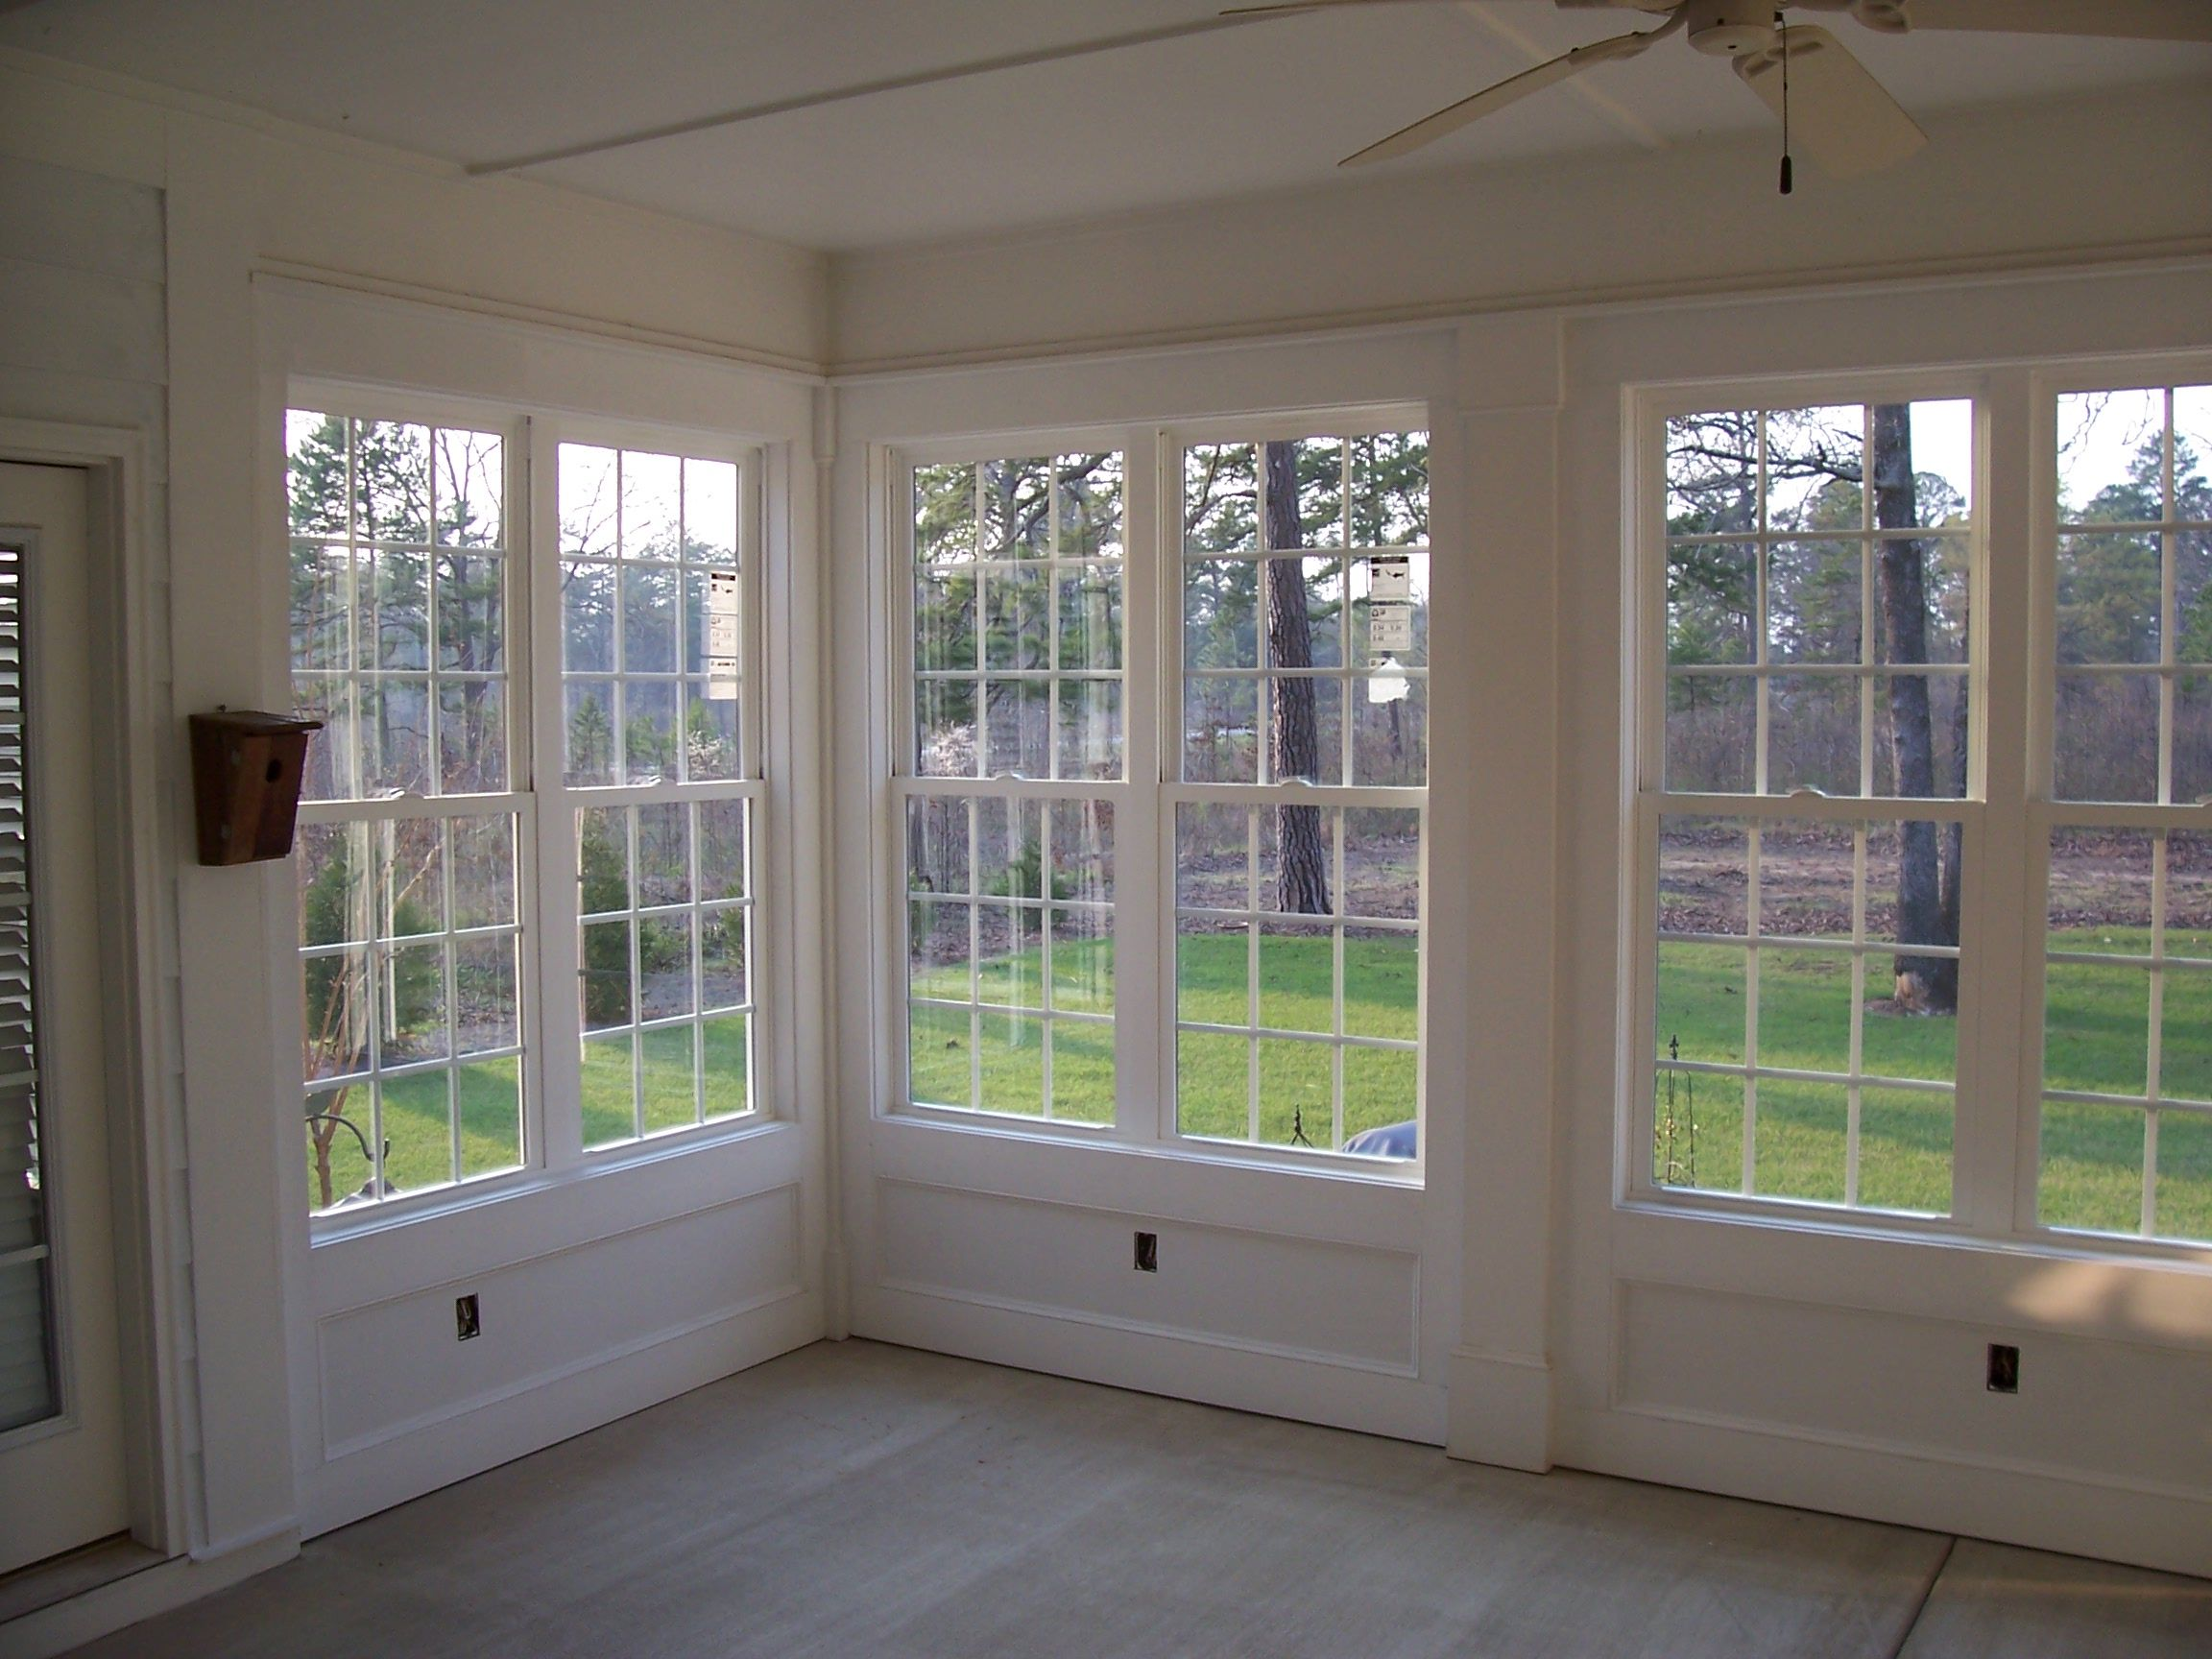 Window ideas for a sunroom  pin by becky jordan on porch  pinterest  sunroom porch and interiors